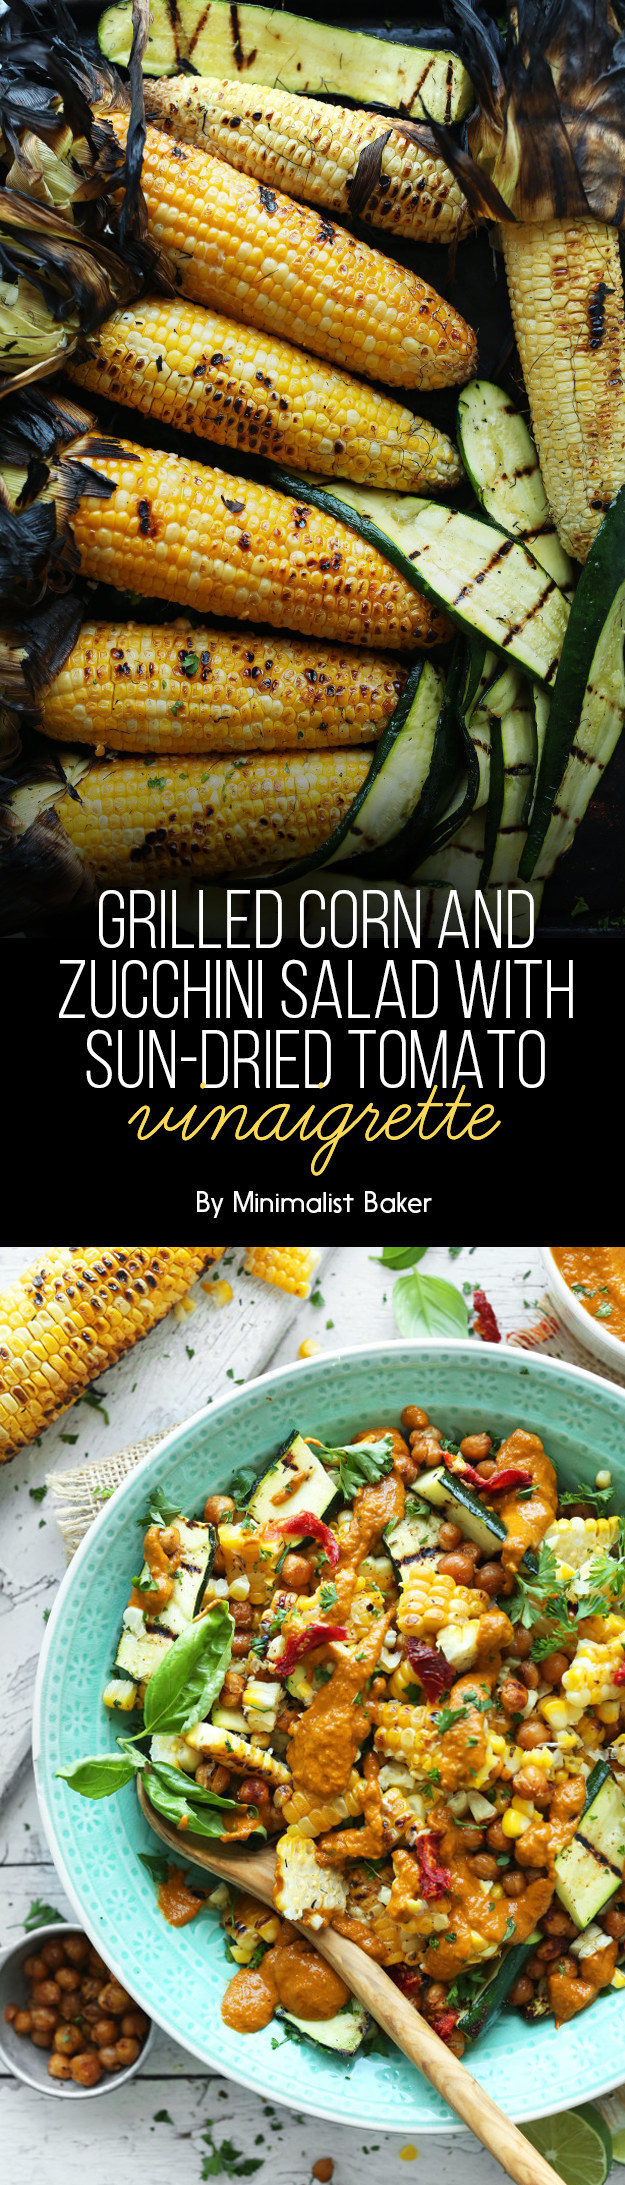 Grilled Corn and Zucchini Salad with Sun-Dried Tomato Vinaigrette